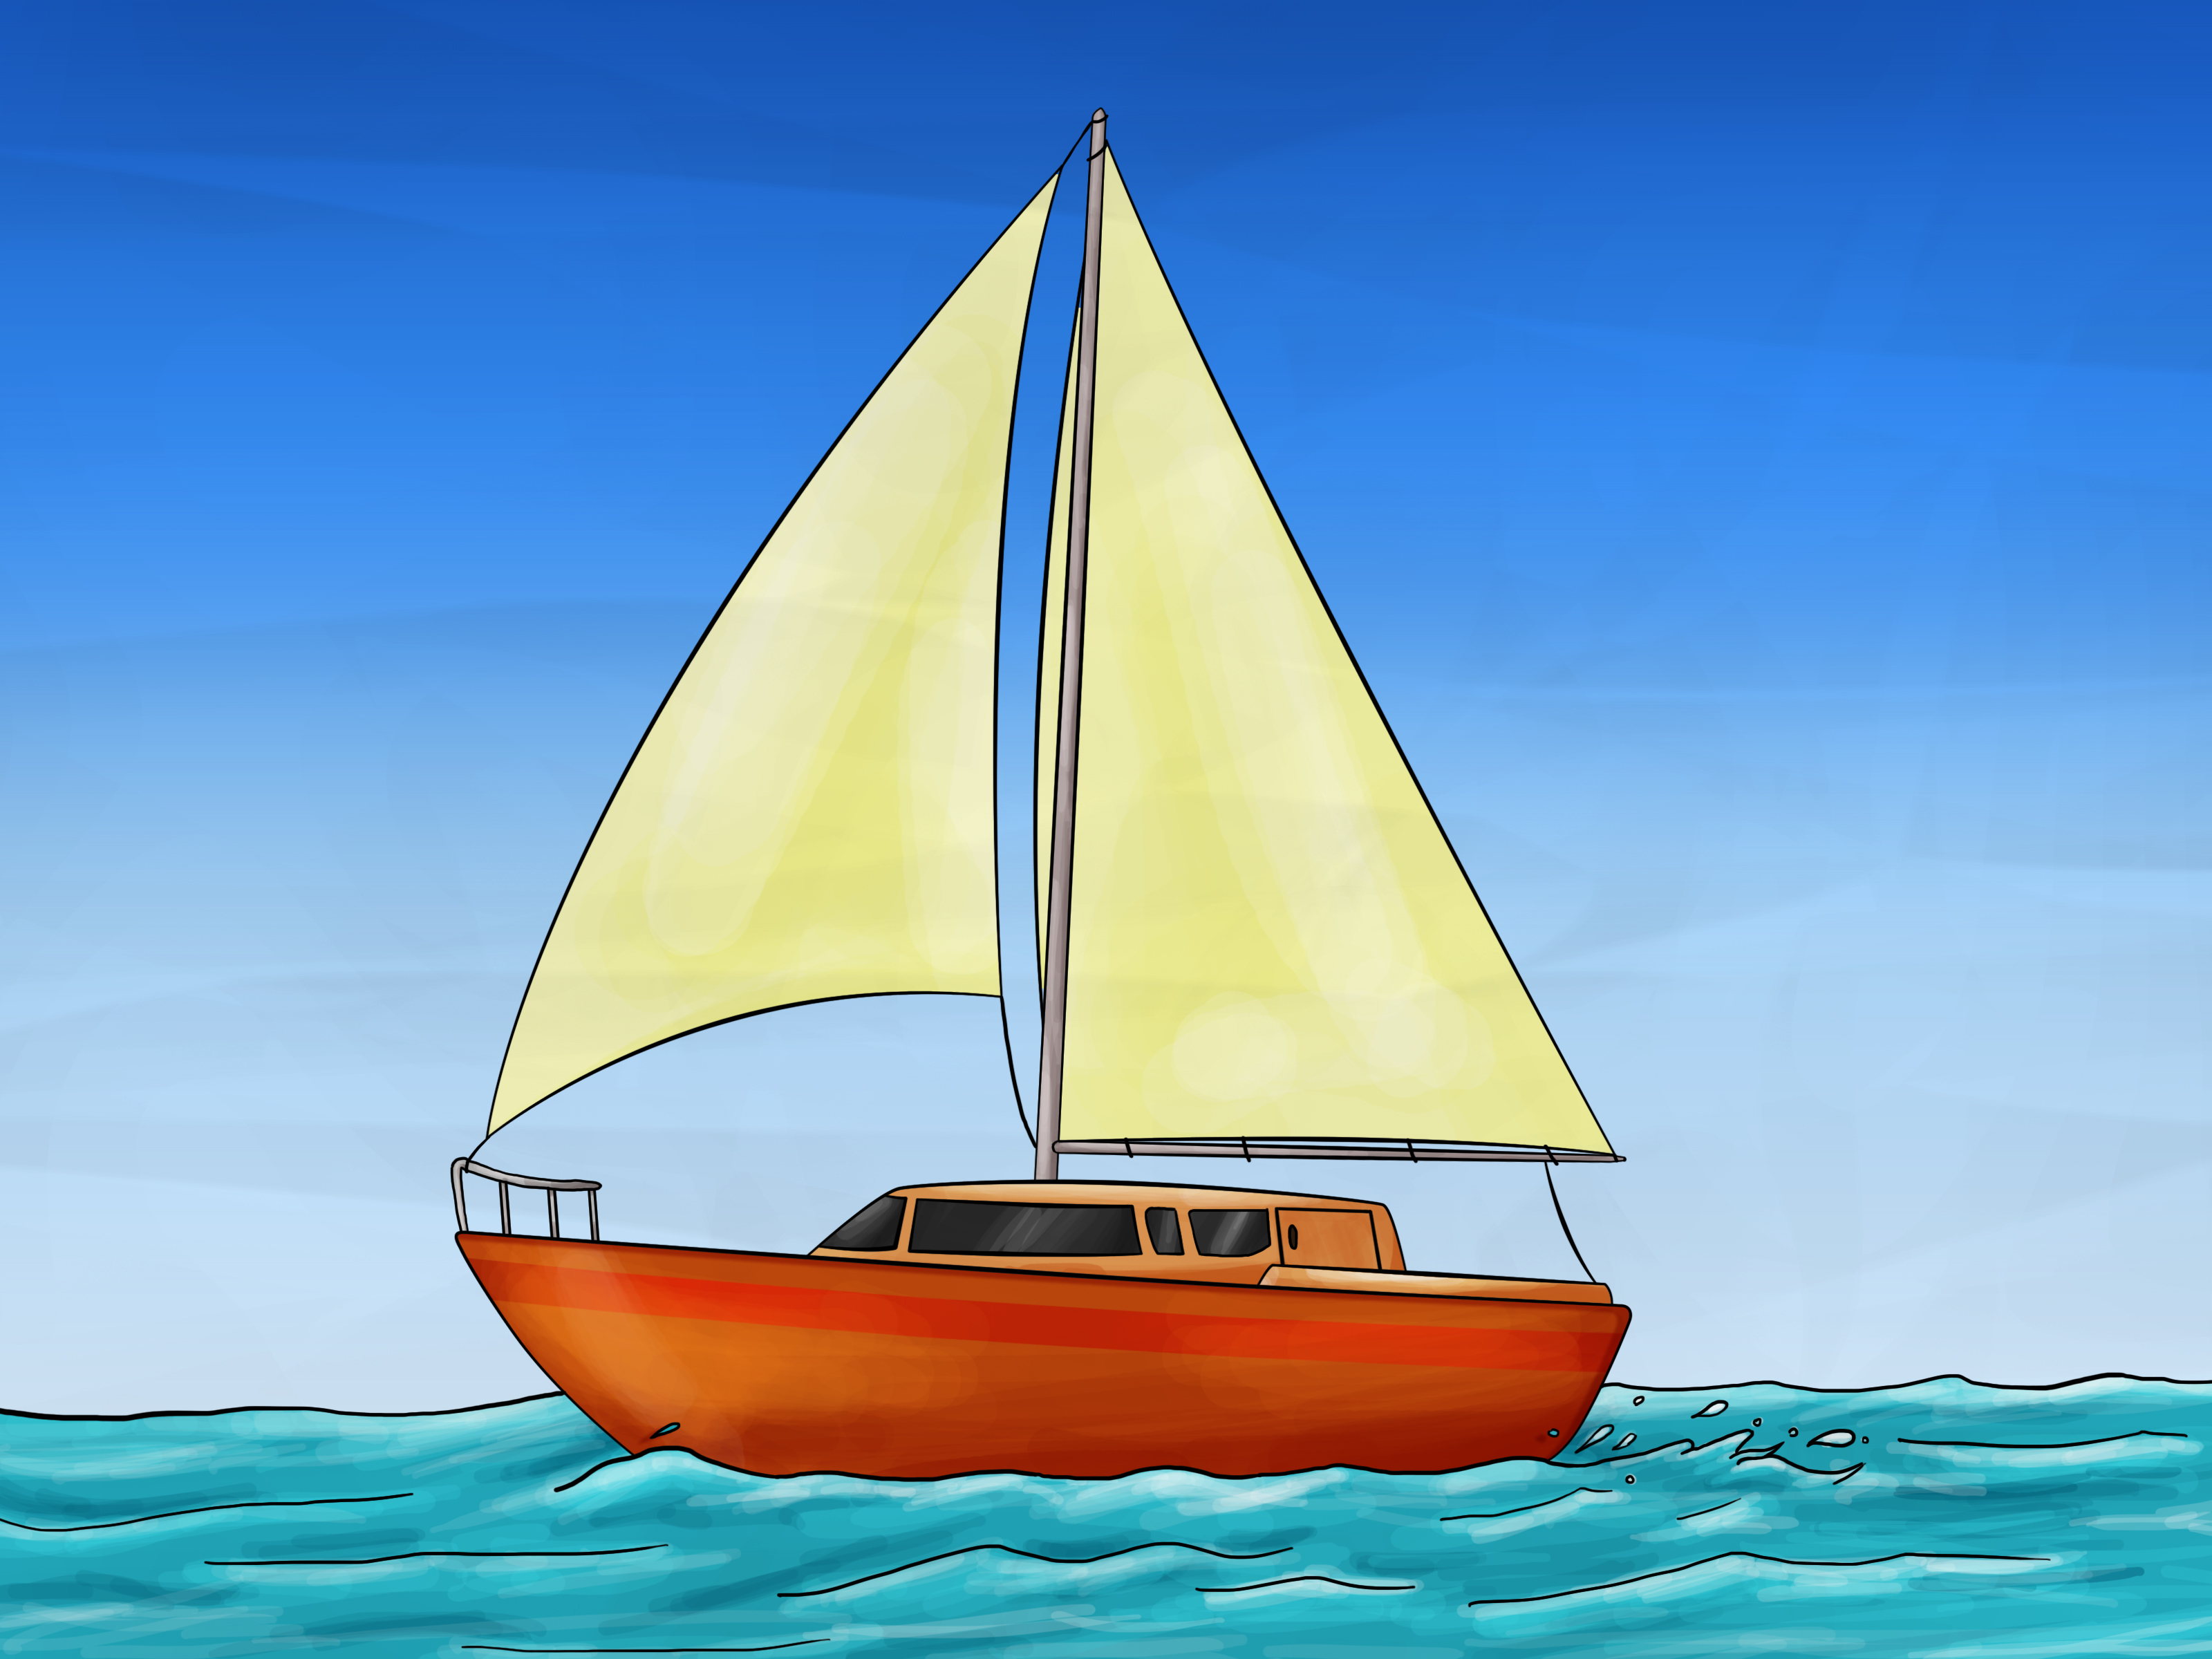 3200x2400 How To Draw A Sailboat 7 Steps (With Pictures)